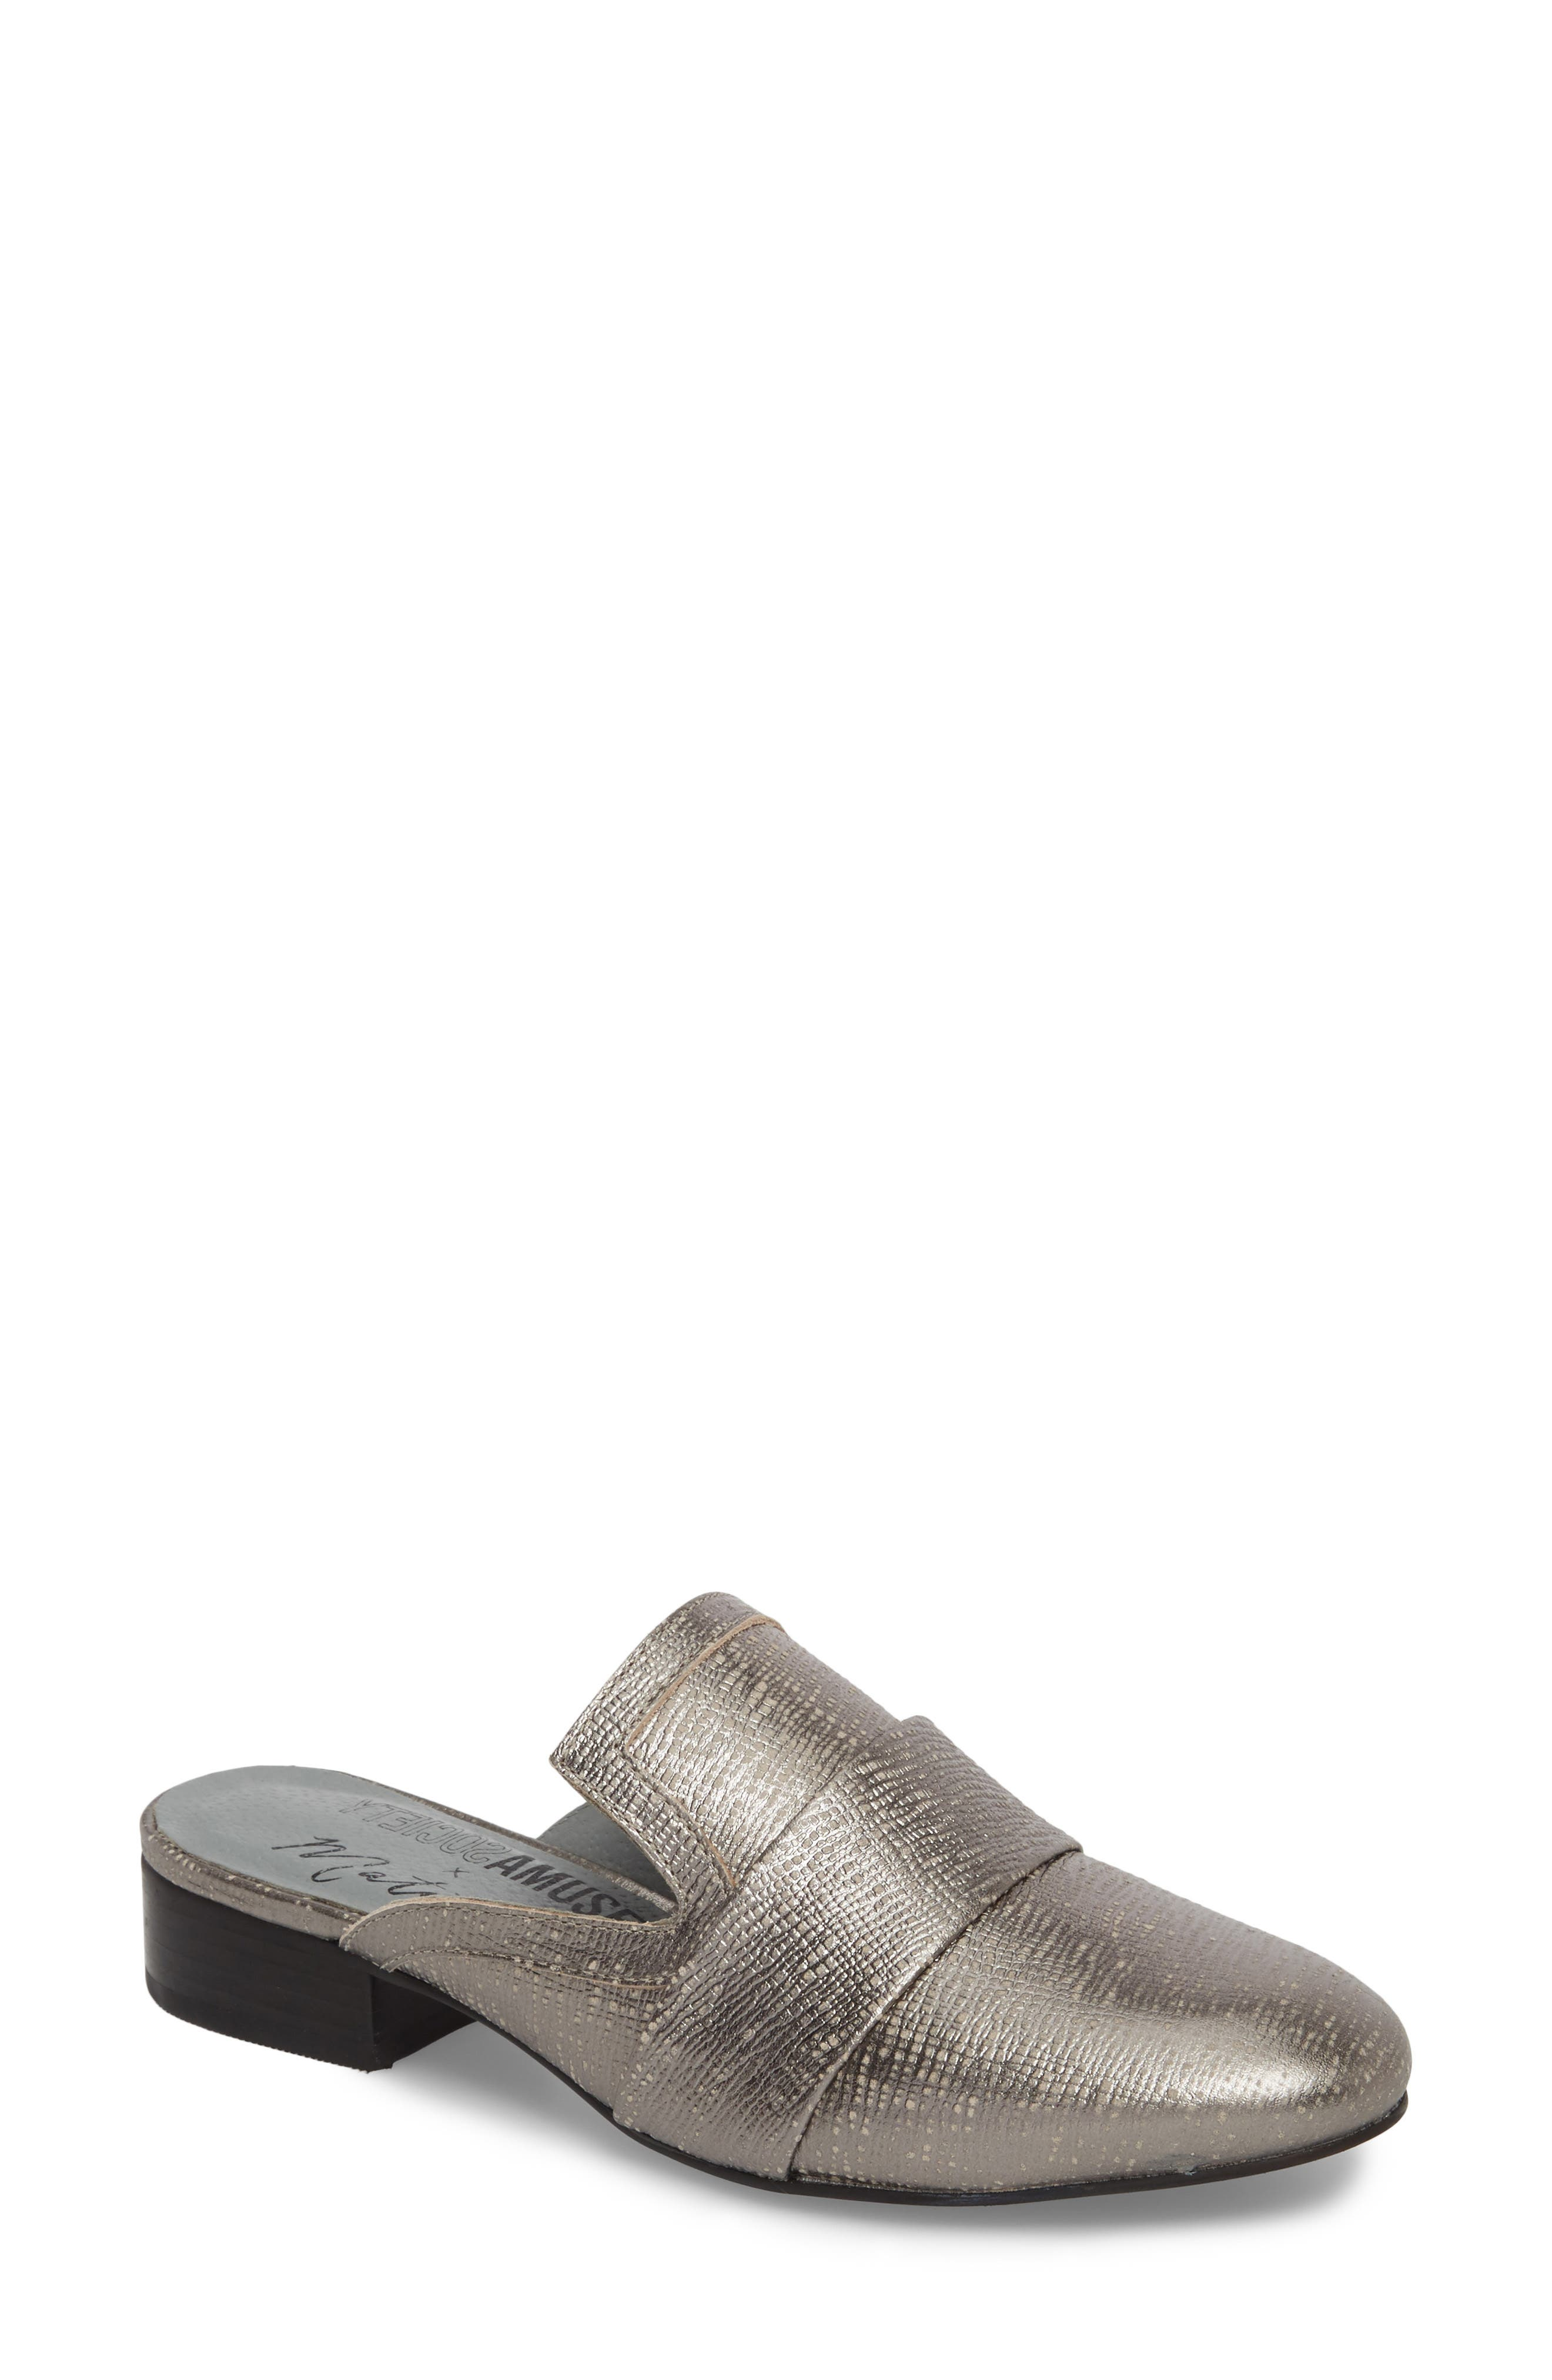 MATISSE,                             Amuse Society x Matisse Le Bella Loafer Mule,                             Main thumbnail 1, color,                             040